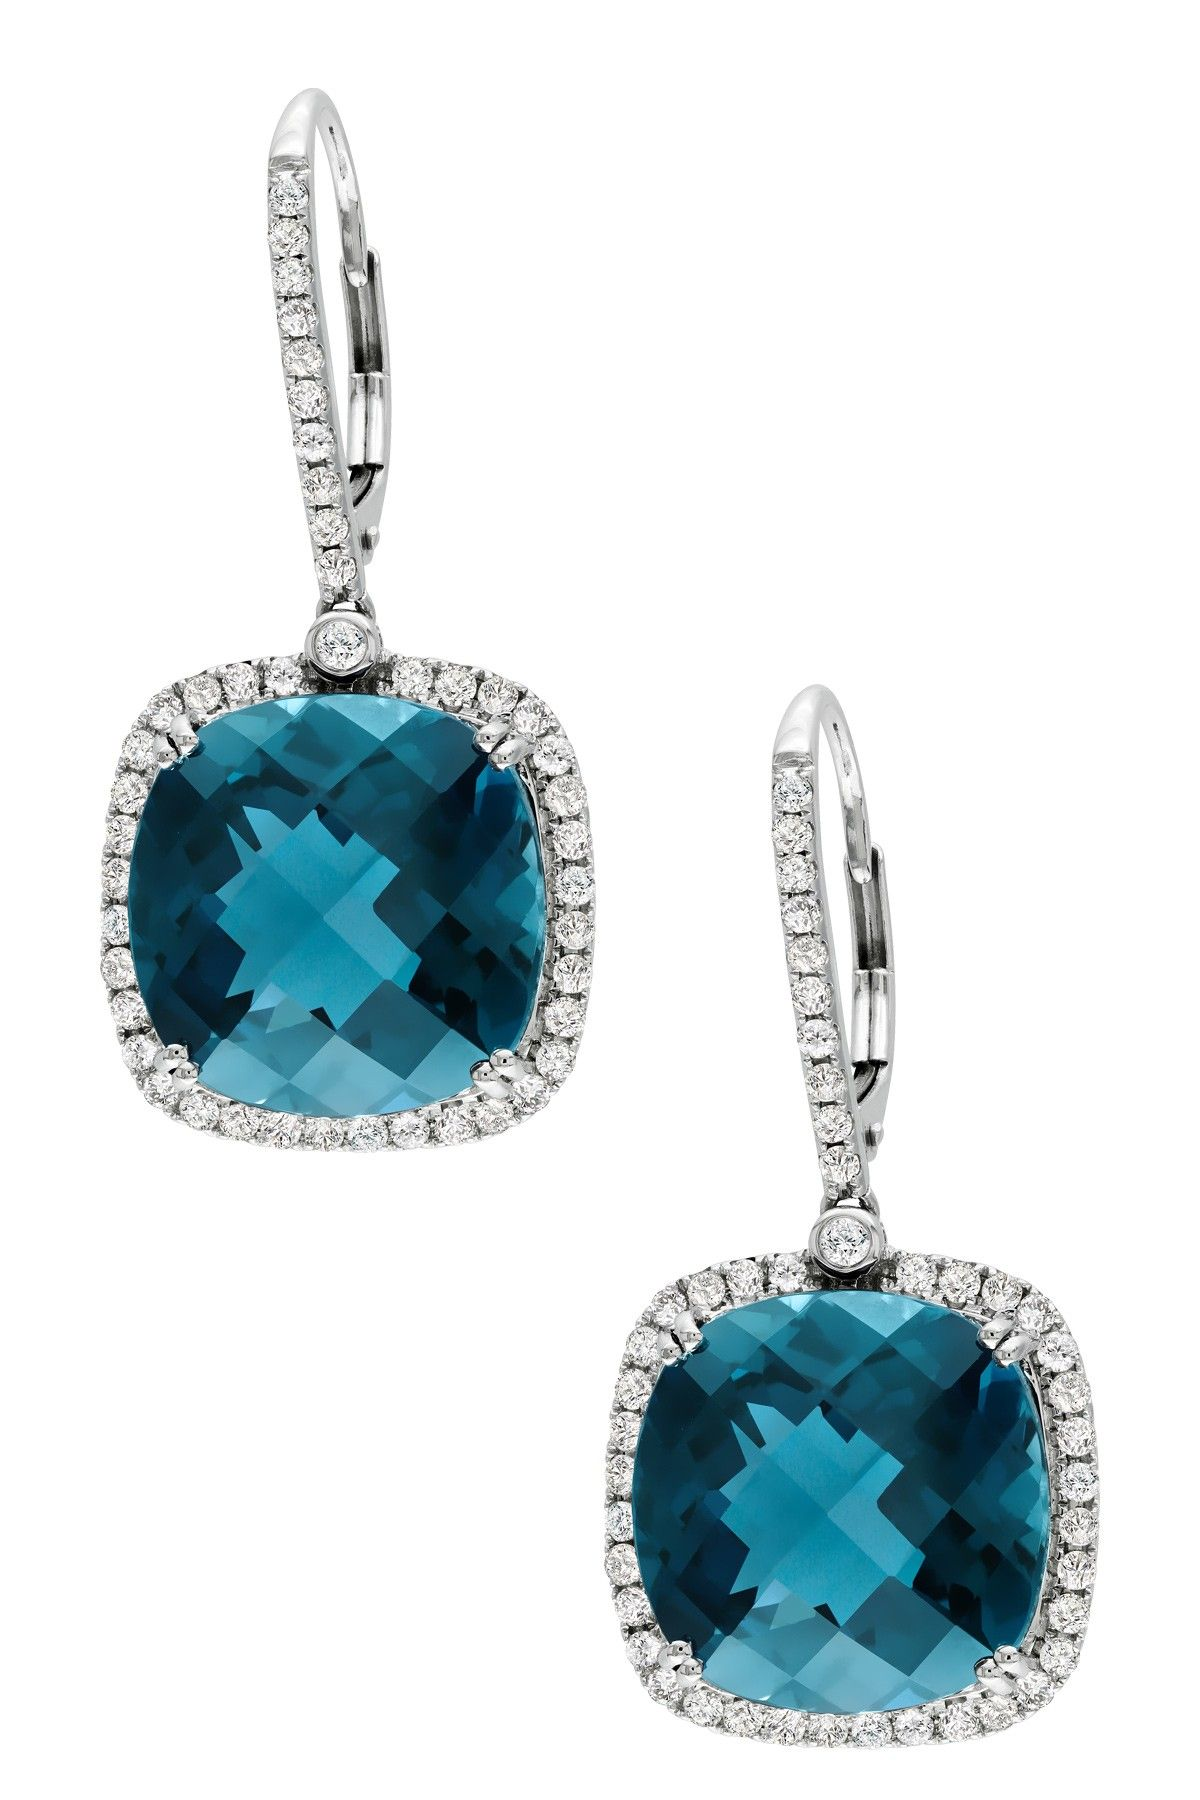 14k White Gold Diamond Halo London Blue Topaz Drop Earrings 0 88 Ctw